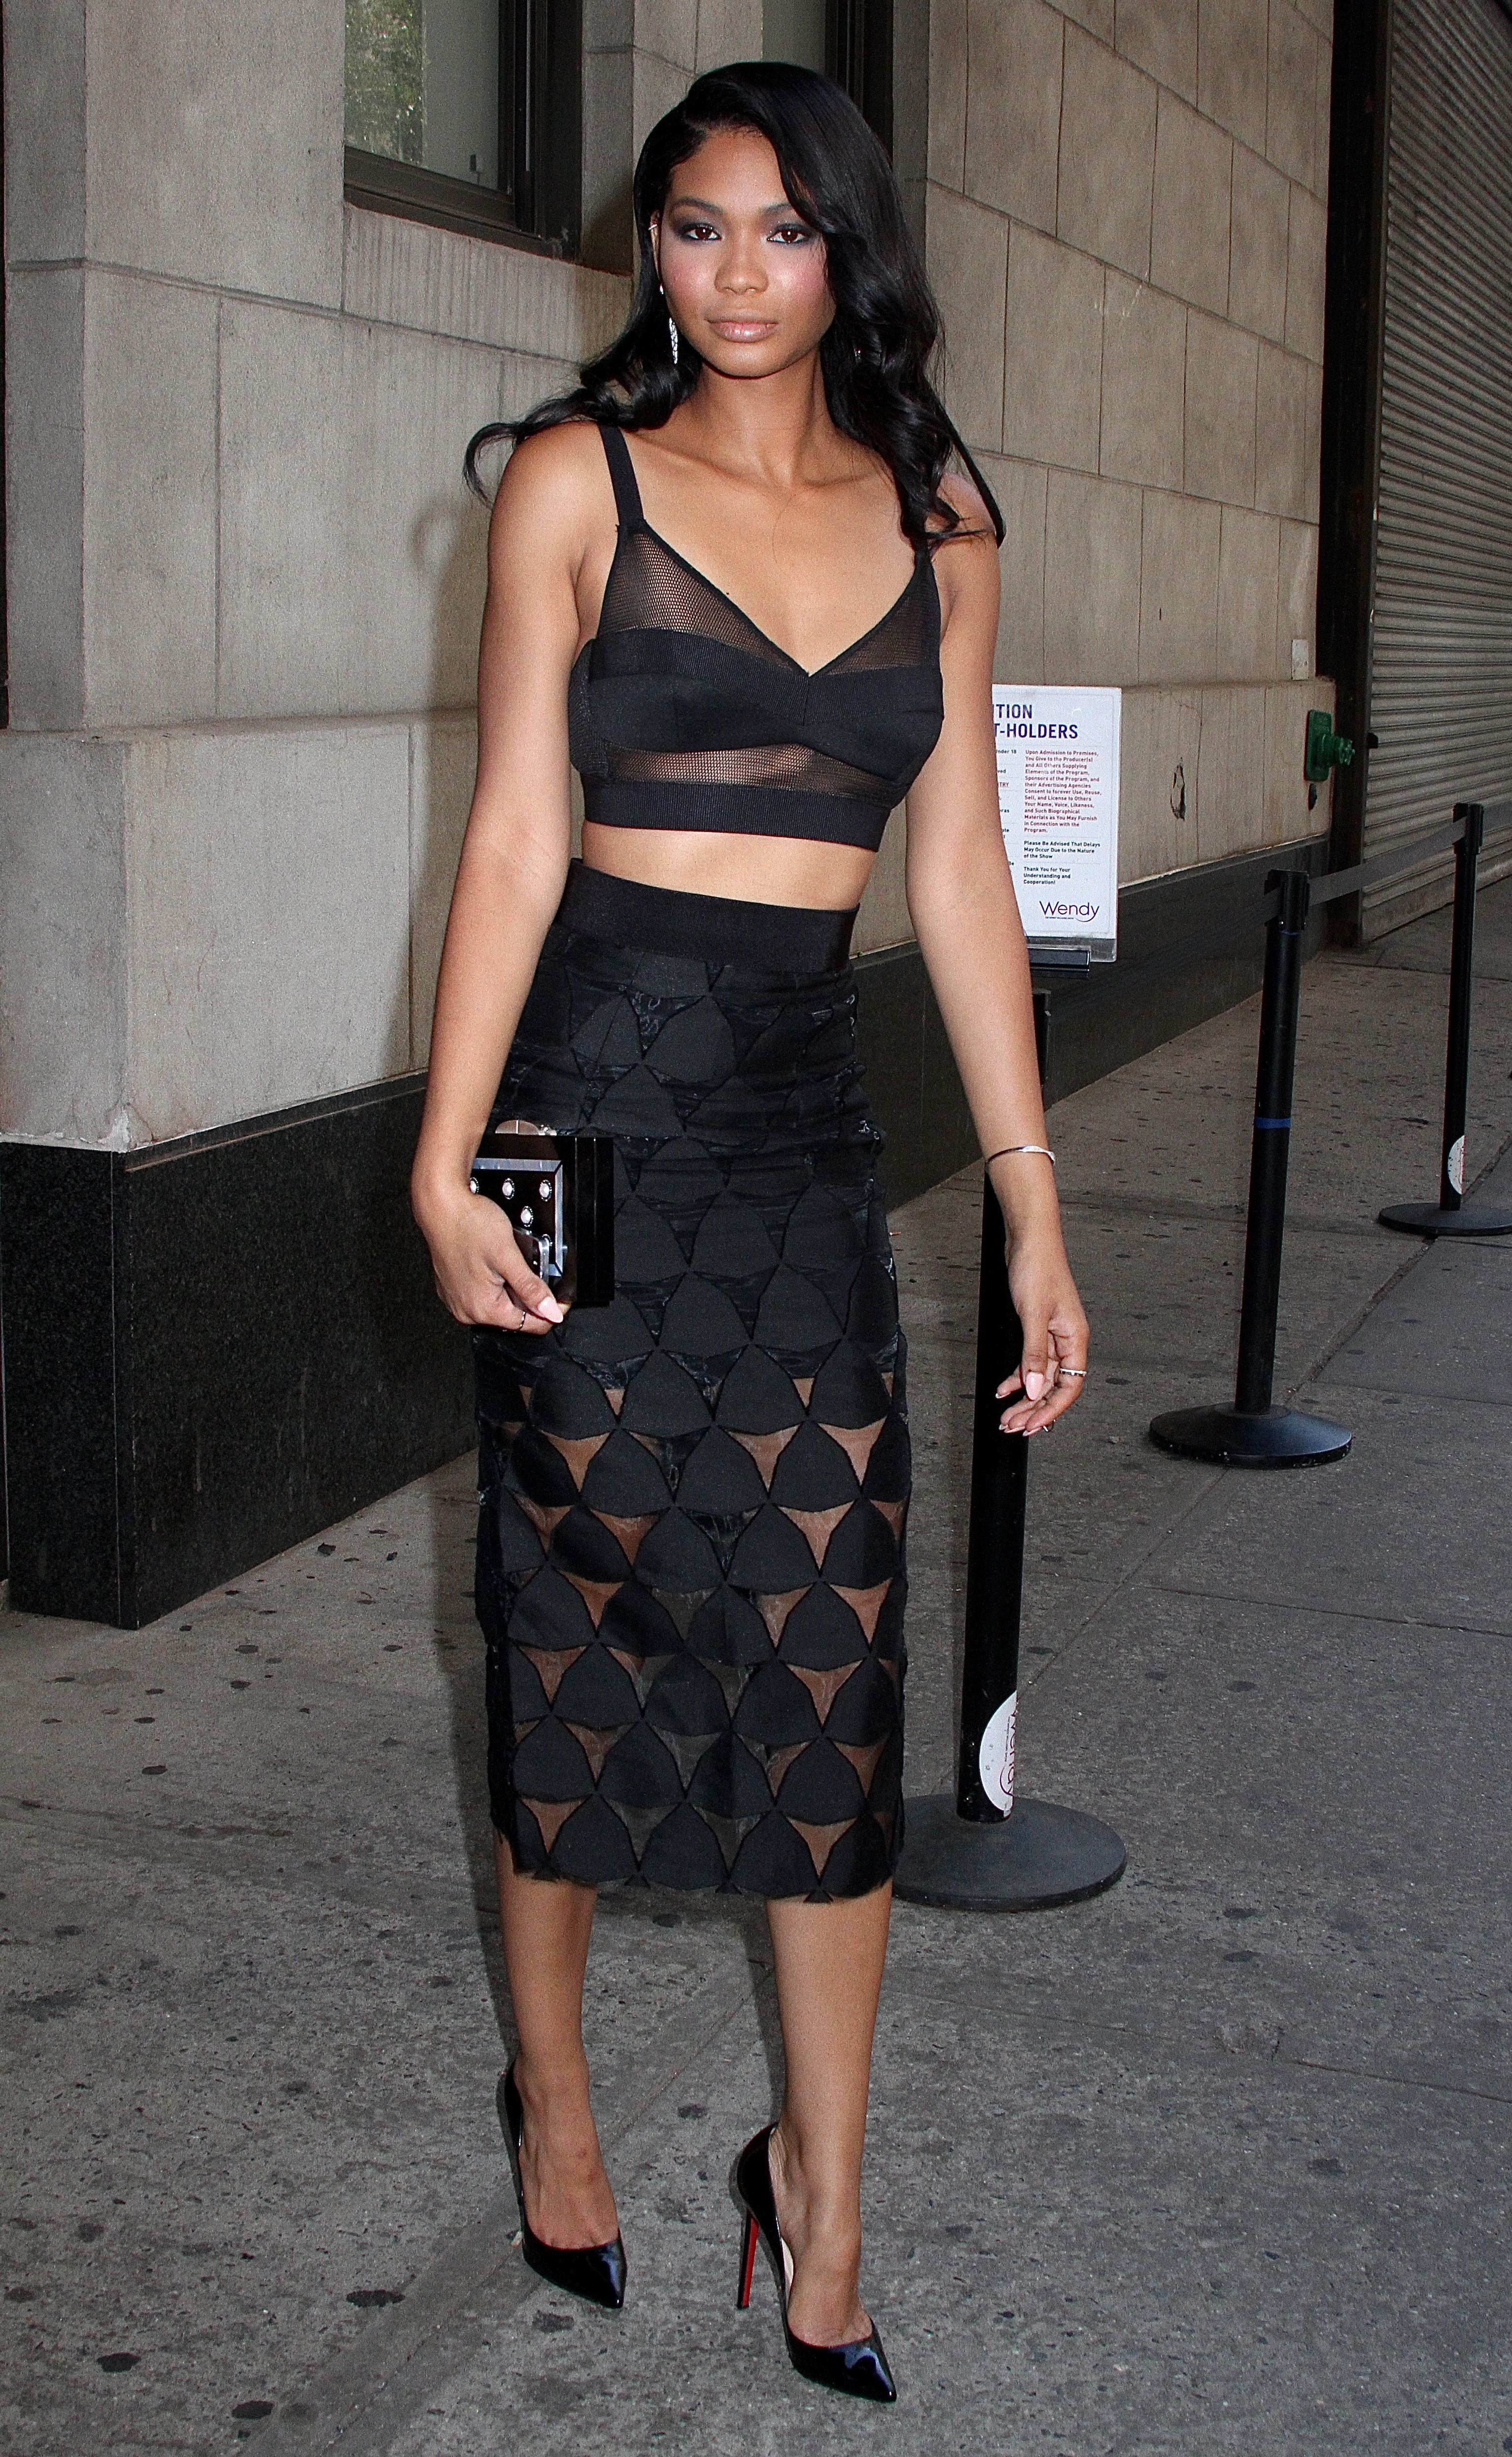 Chanel Iman heads to Wendy Williams